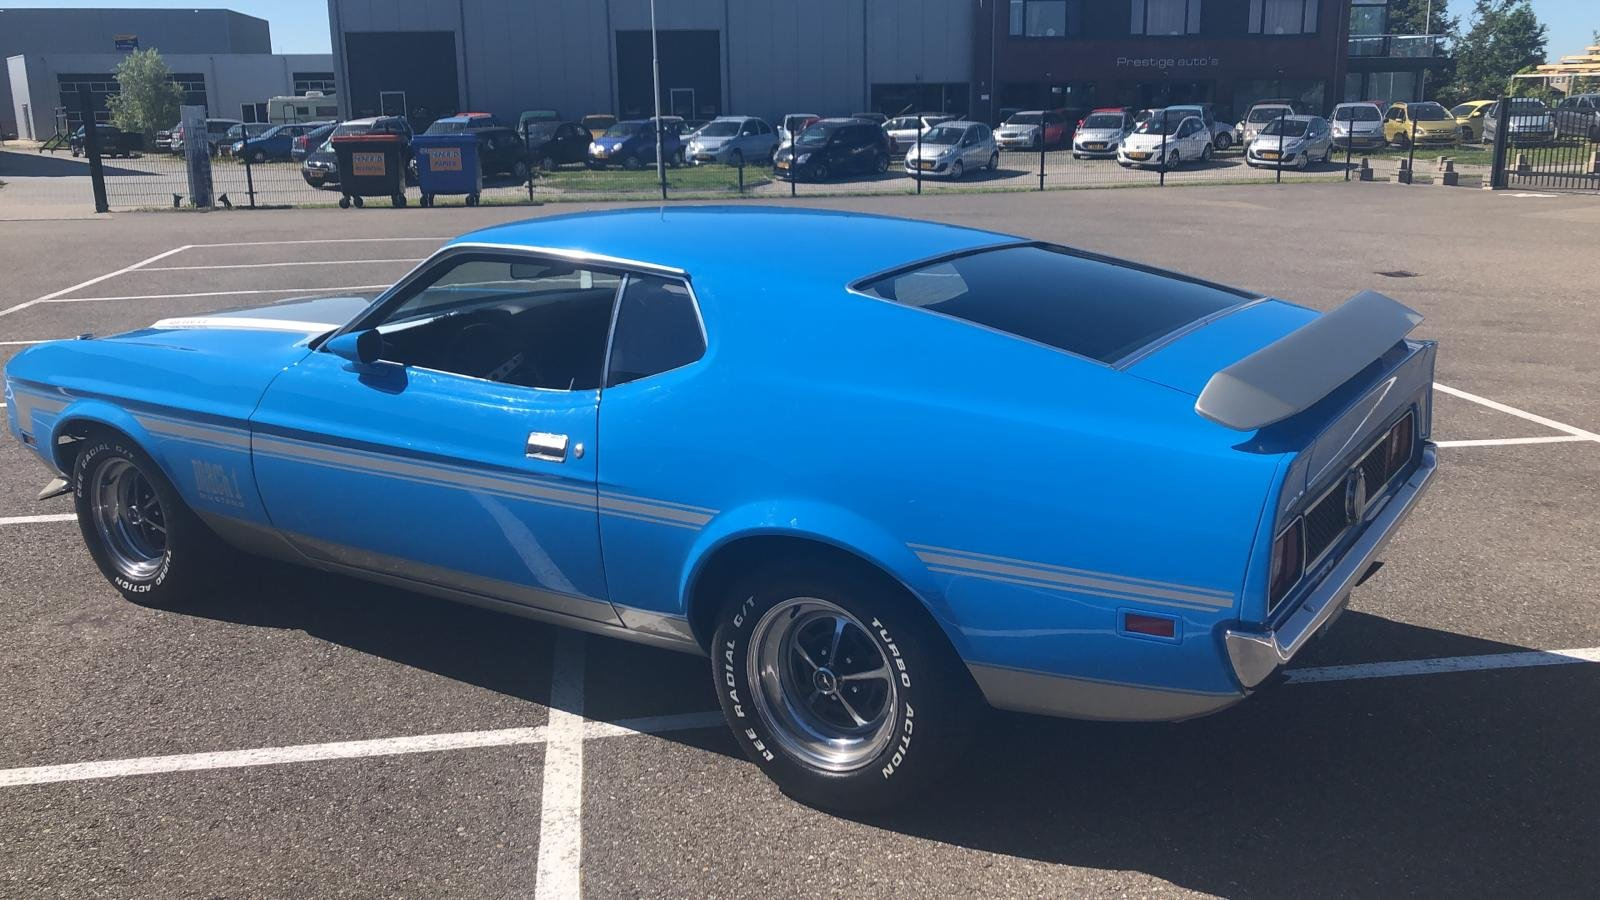 1971 71 Mustang mach 1 429 SCJ dragpack, super rare car ! For Sale (picture 3 of 6)